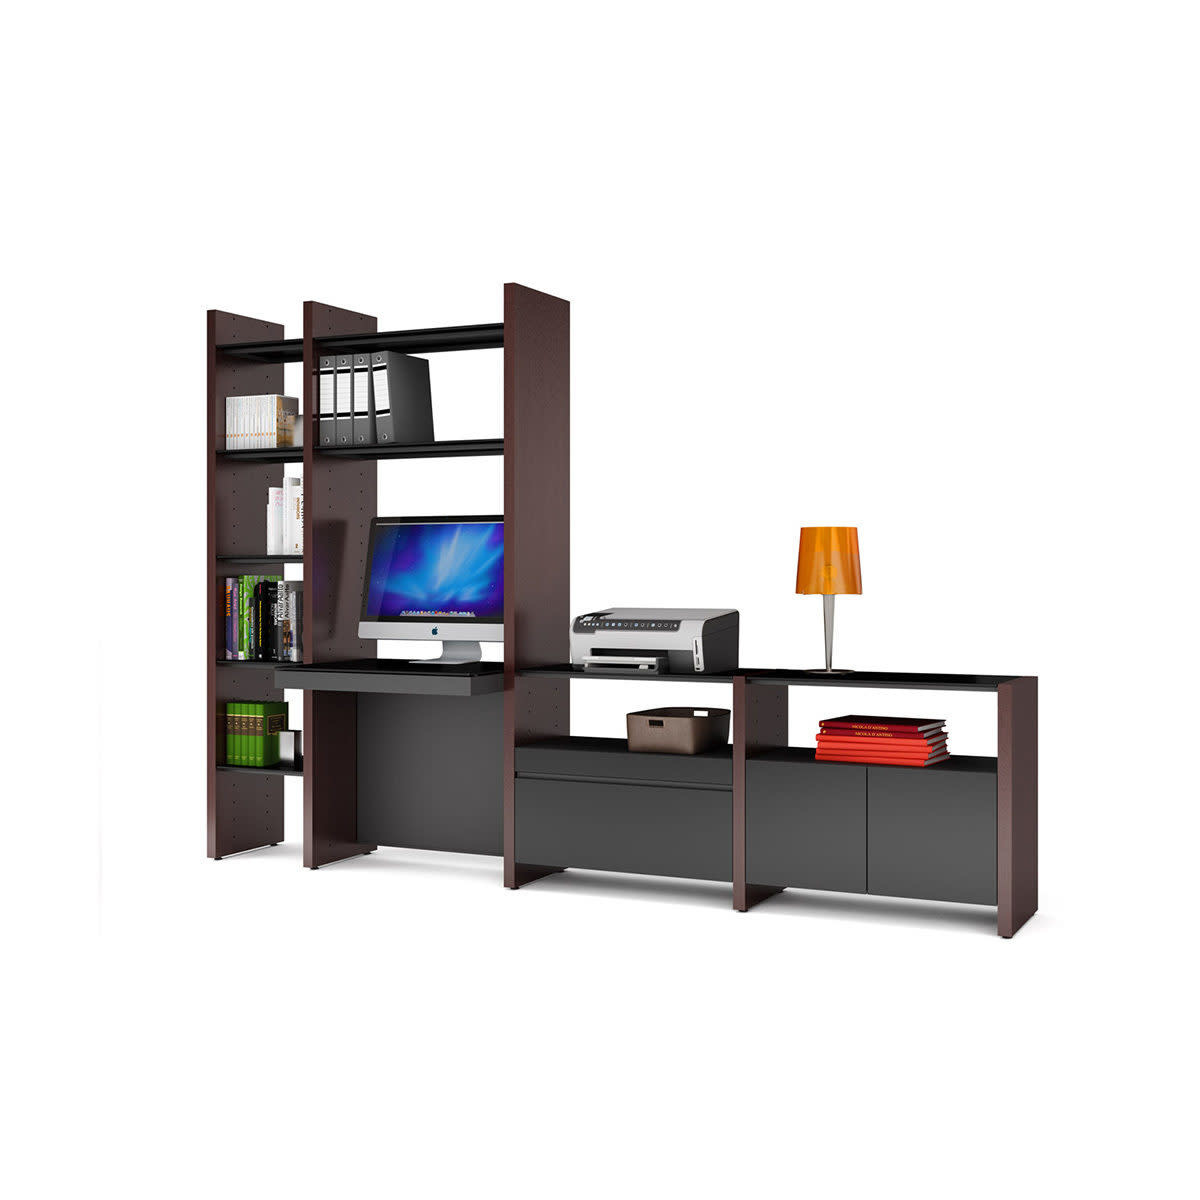 BDI Semblance 5464-DK Four-section Office System with Inline Desk